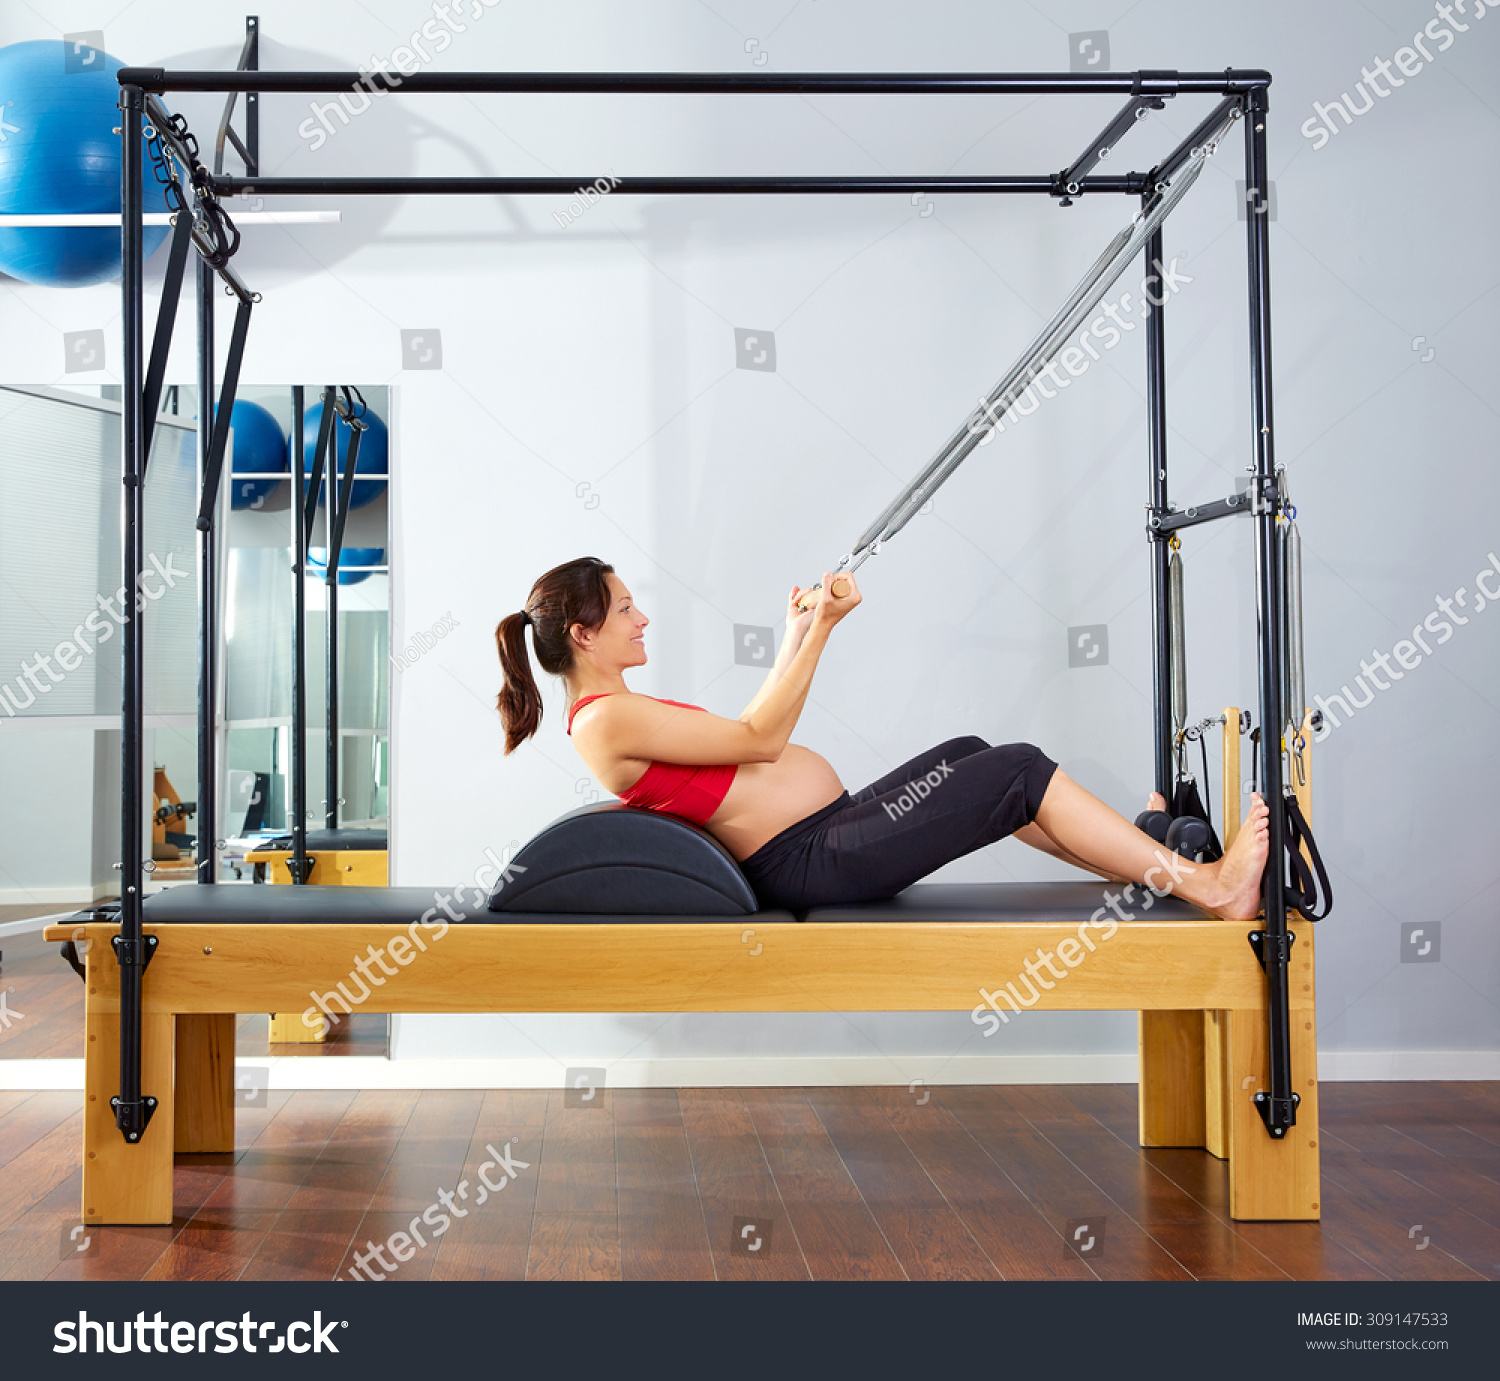 Woman Pilates Chair Exercises Fitness Stock Photo: Pregnant Woman Pilates Reformer Roll Cadillac Stock Photo